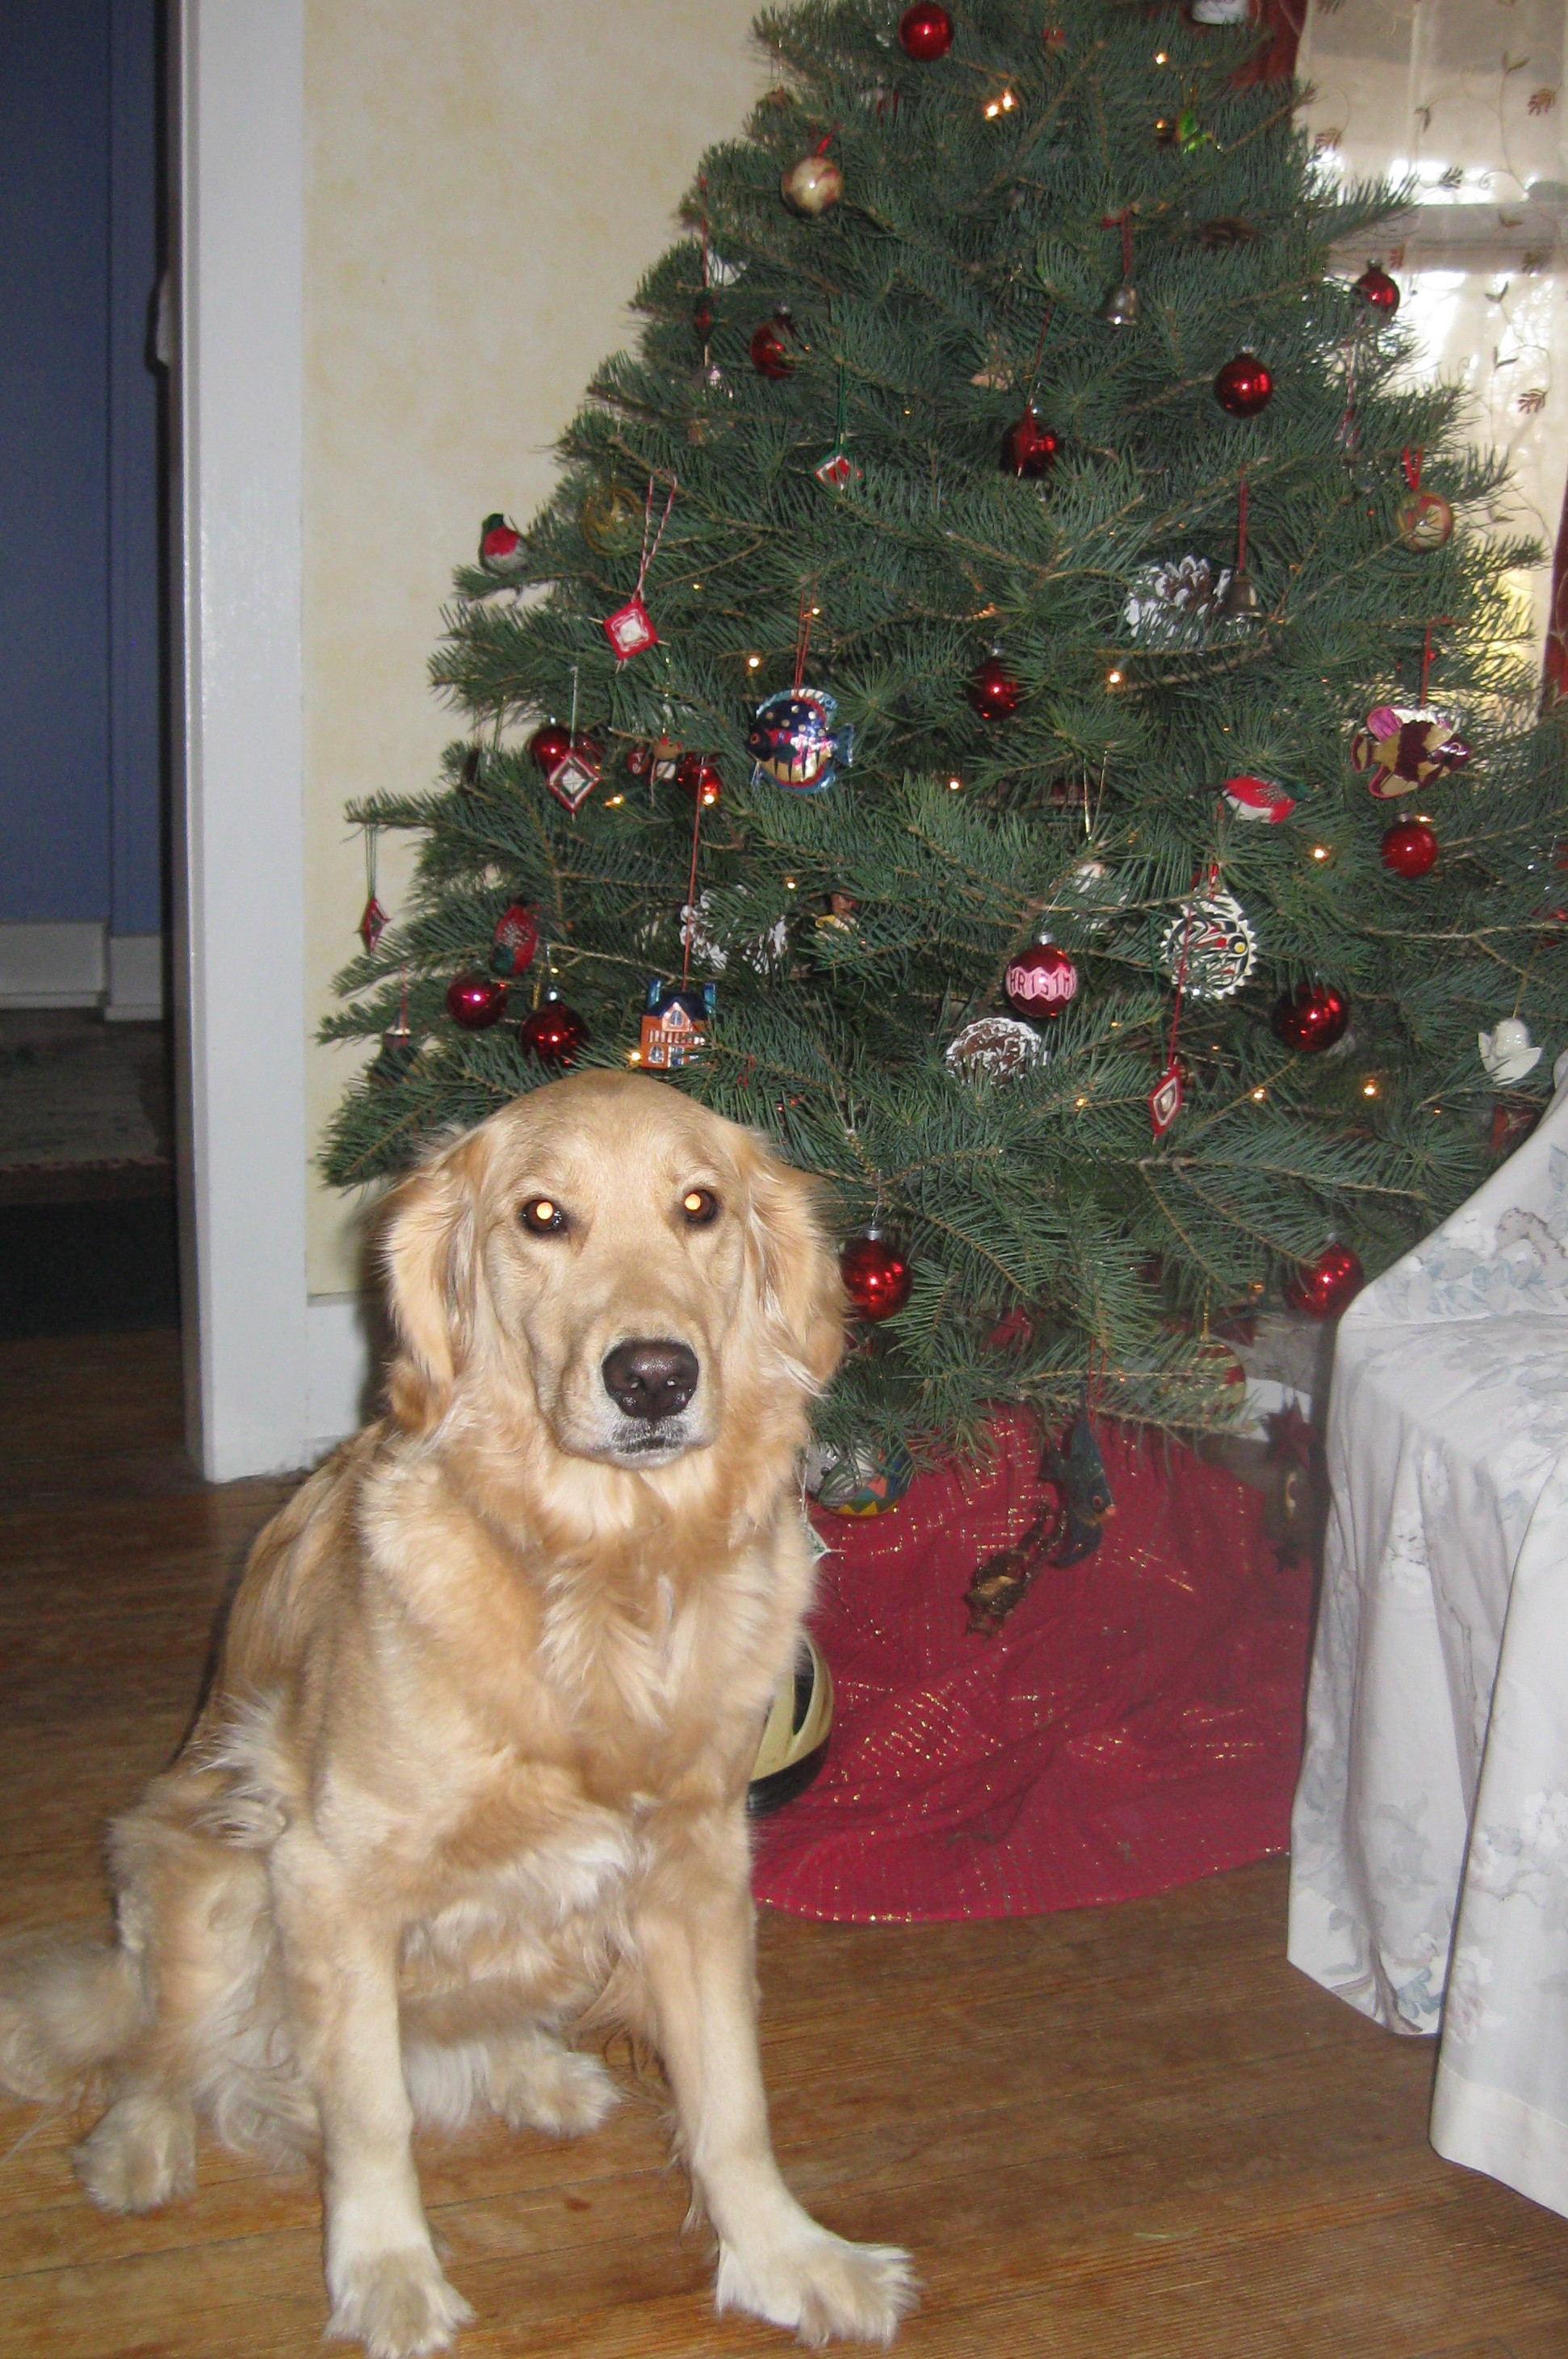 Golden Retriever and Christmas Tree